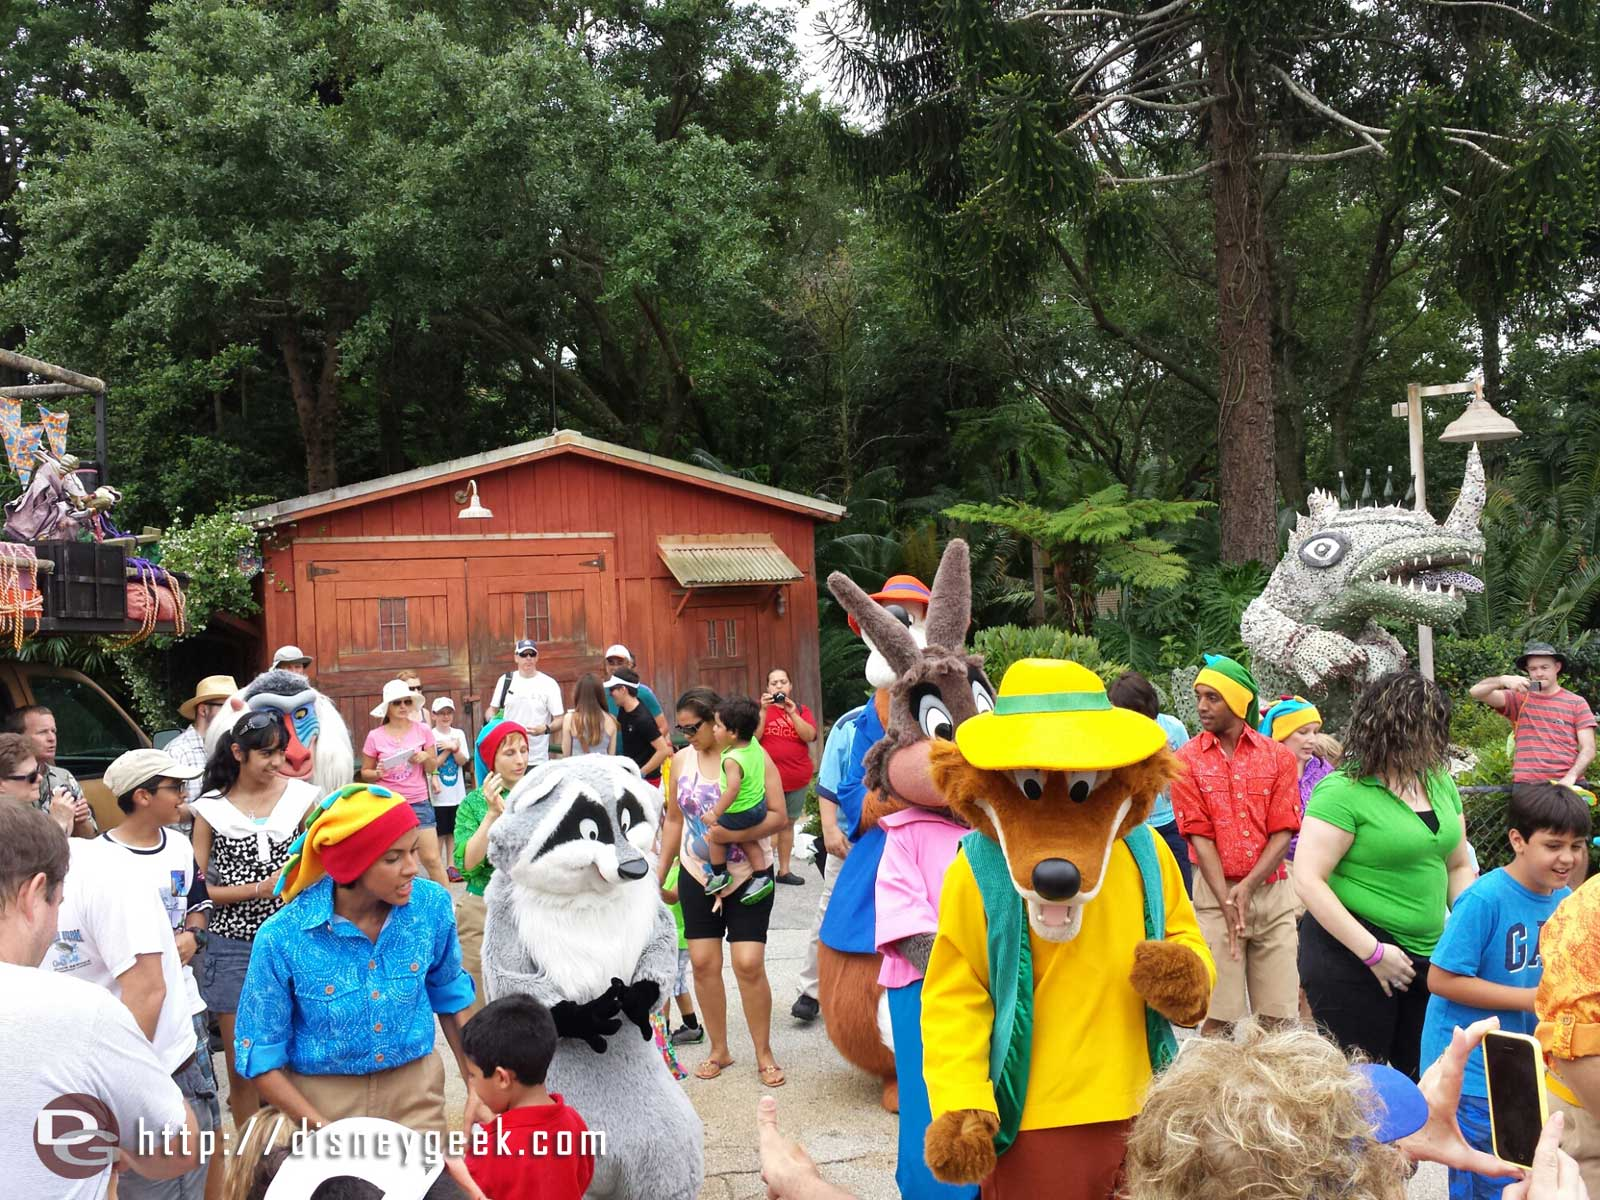 Meeko, Rafikki, Brer Fox, Brer Rabbit & Brer Bear at the dance party in Dinoland – Disney's Animal Kingdom